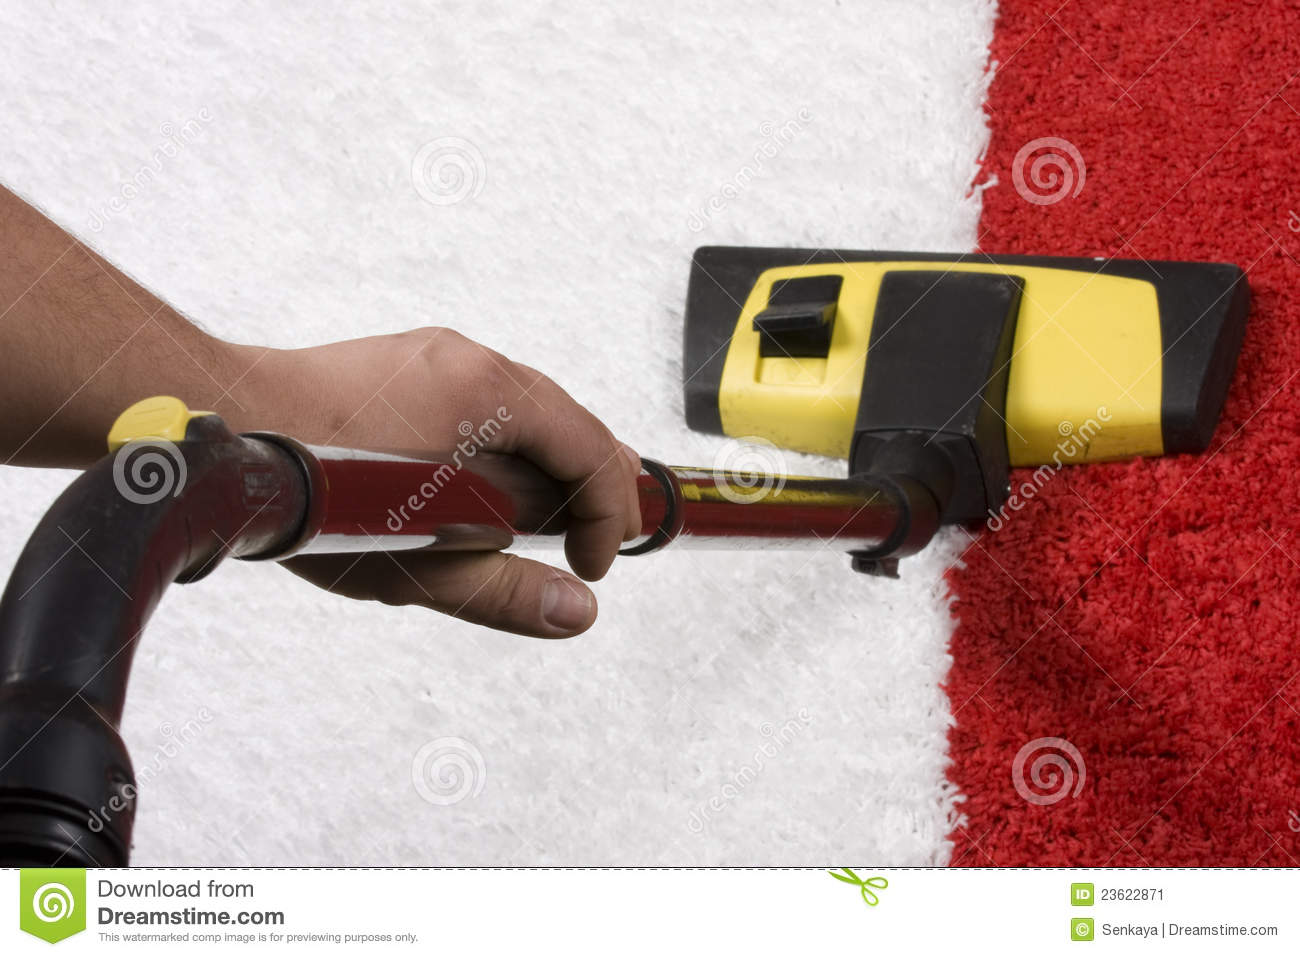 Carpet Cleaning Robot Images